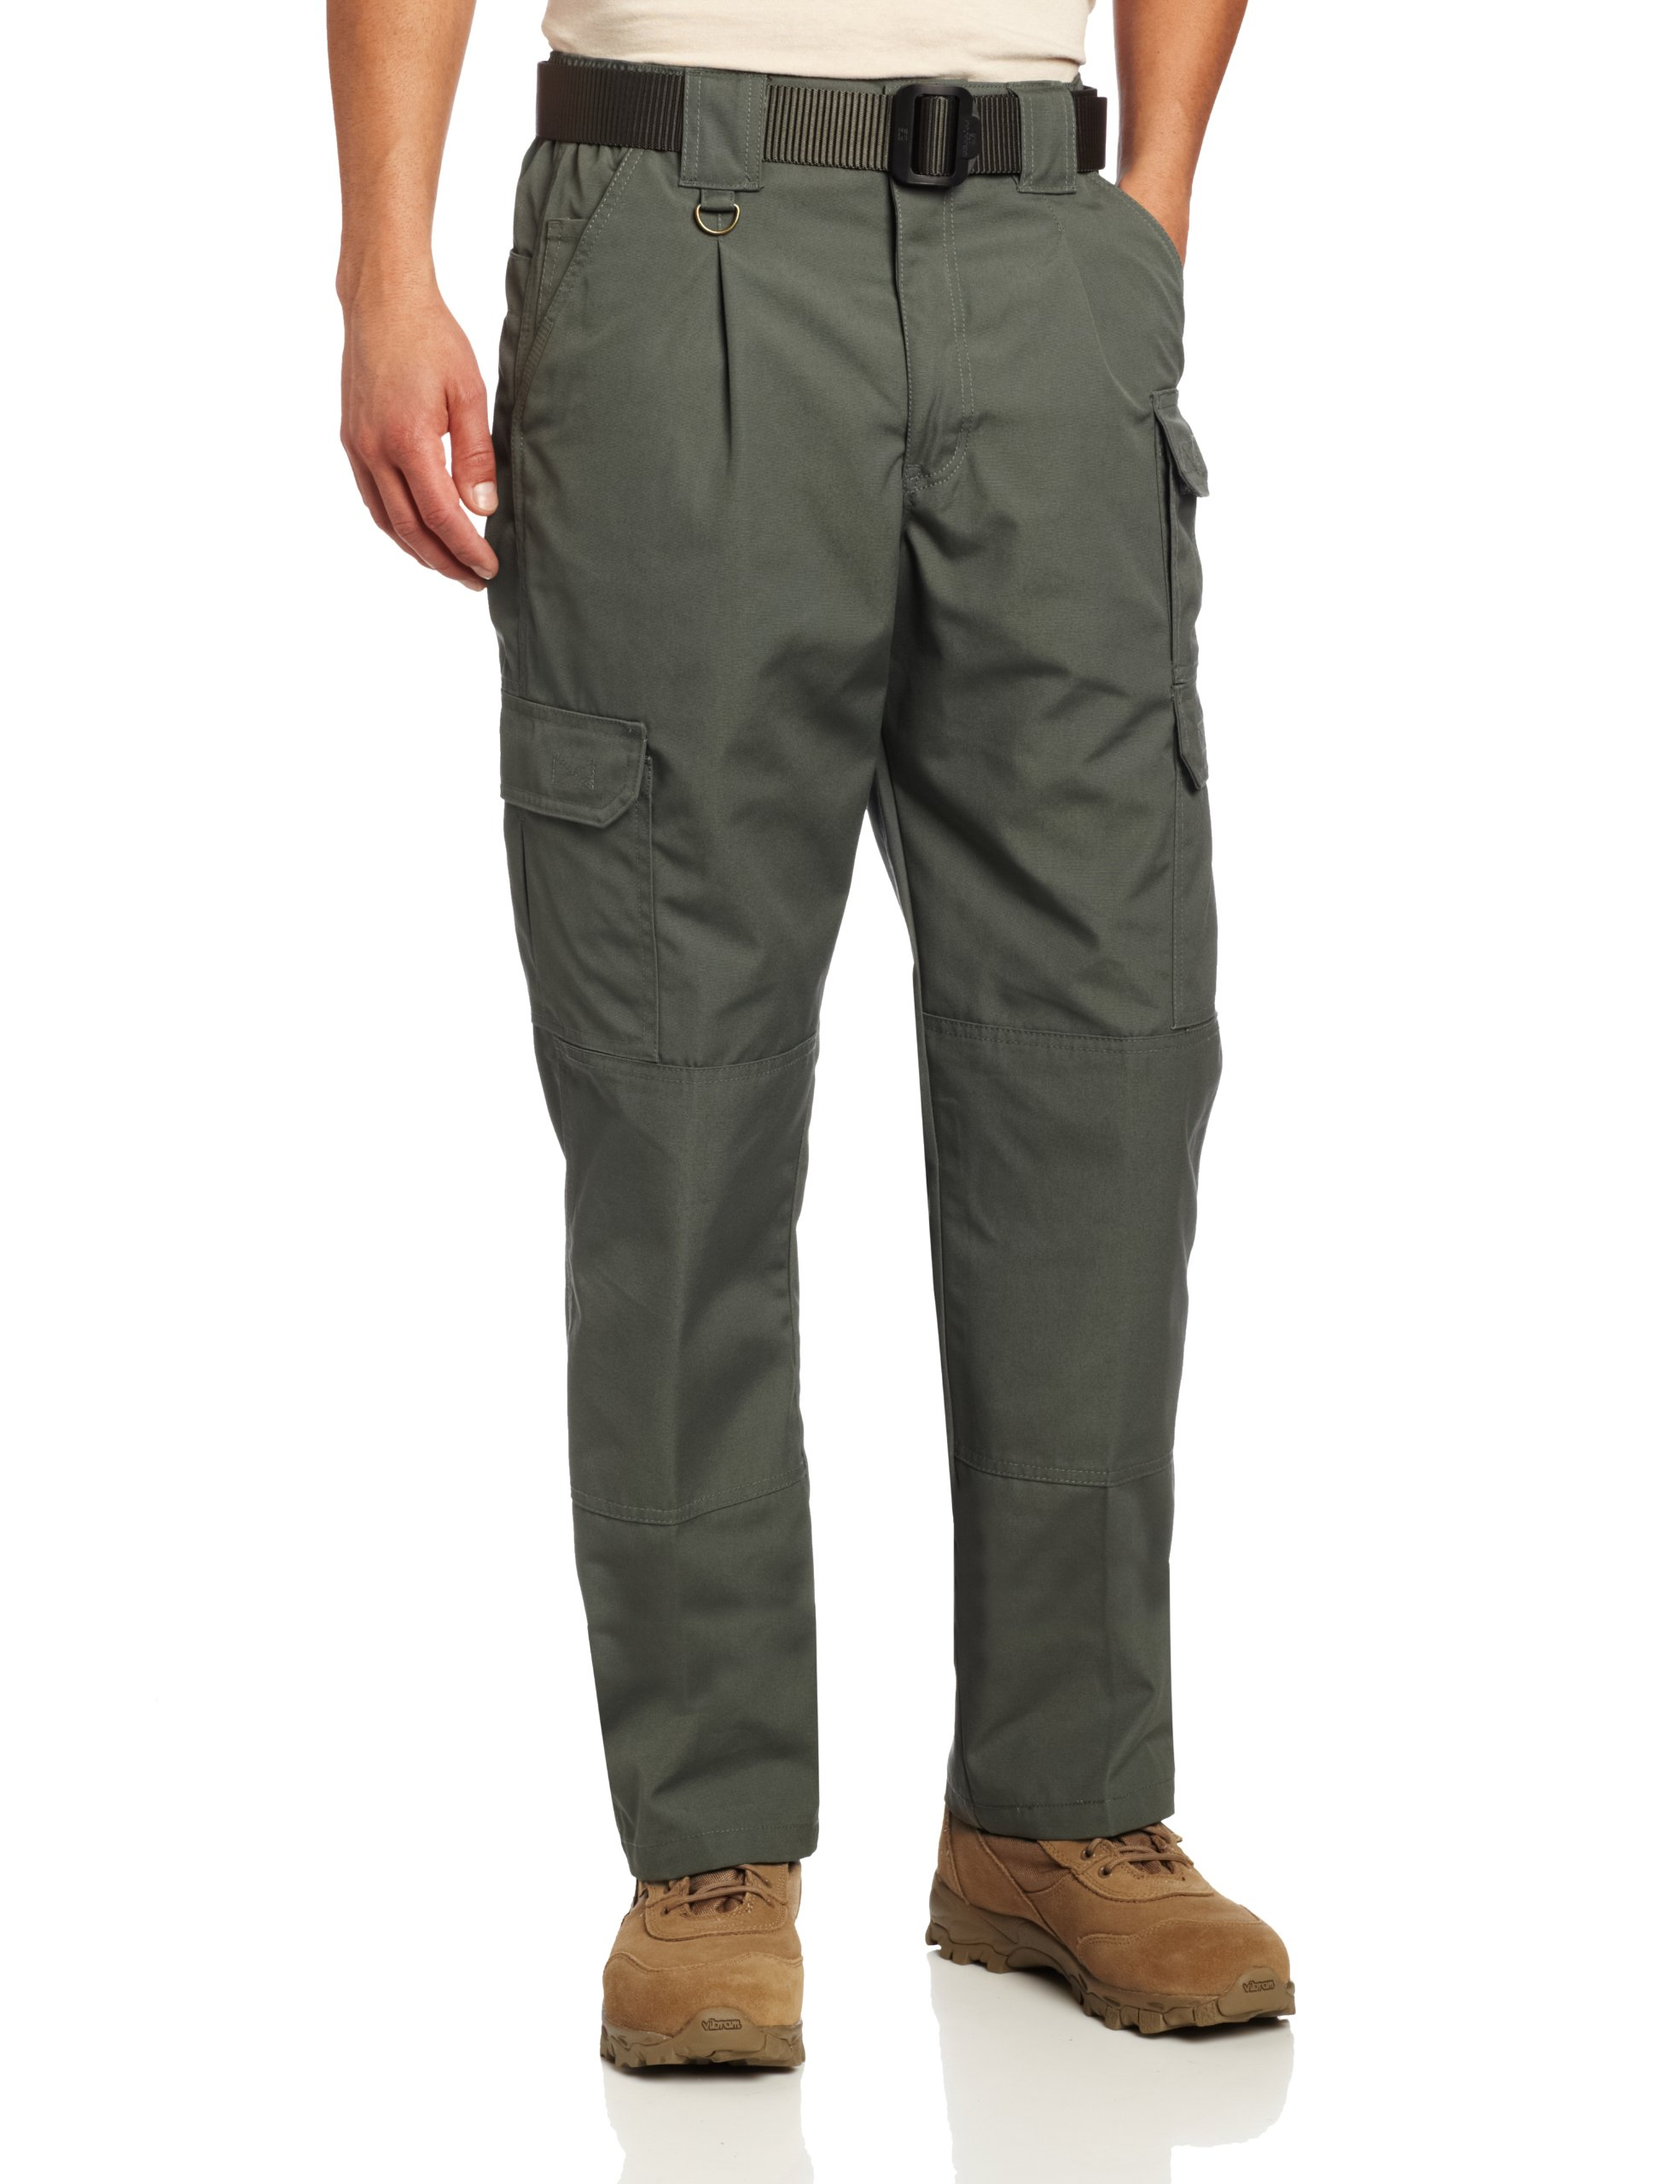 Propper Men's Canvas Tactical Pant, Olive, 34 x 30